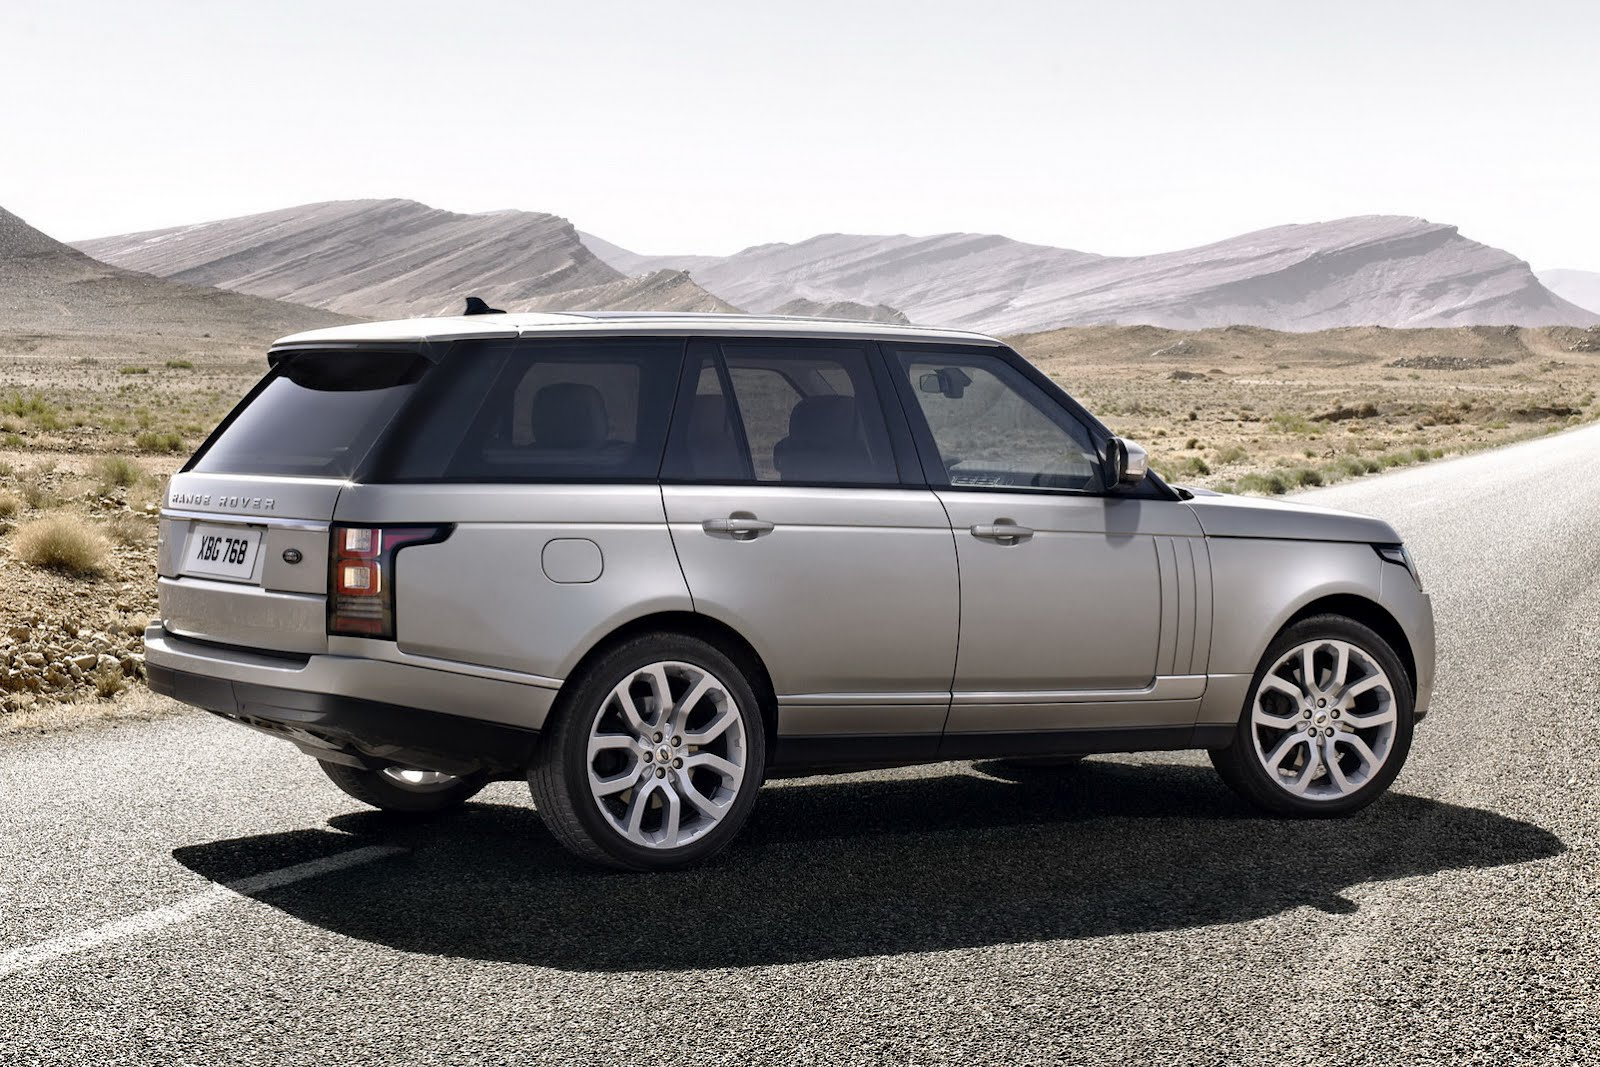 Land rover rang rover photo - 1